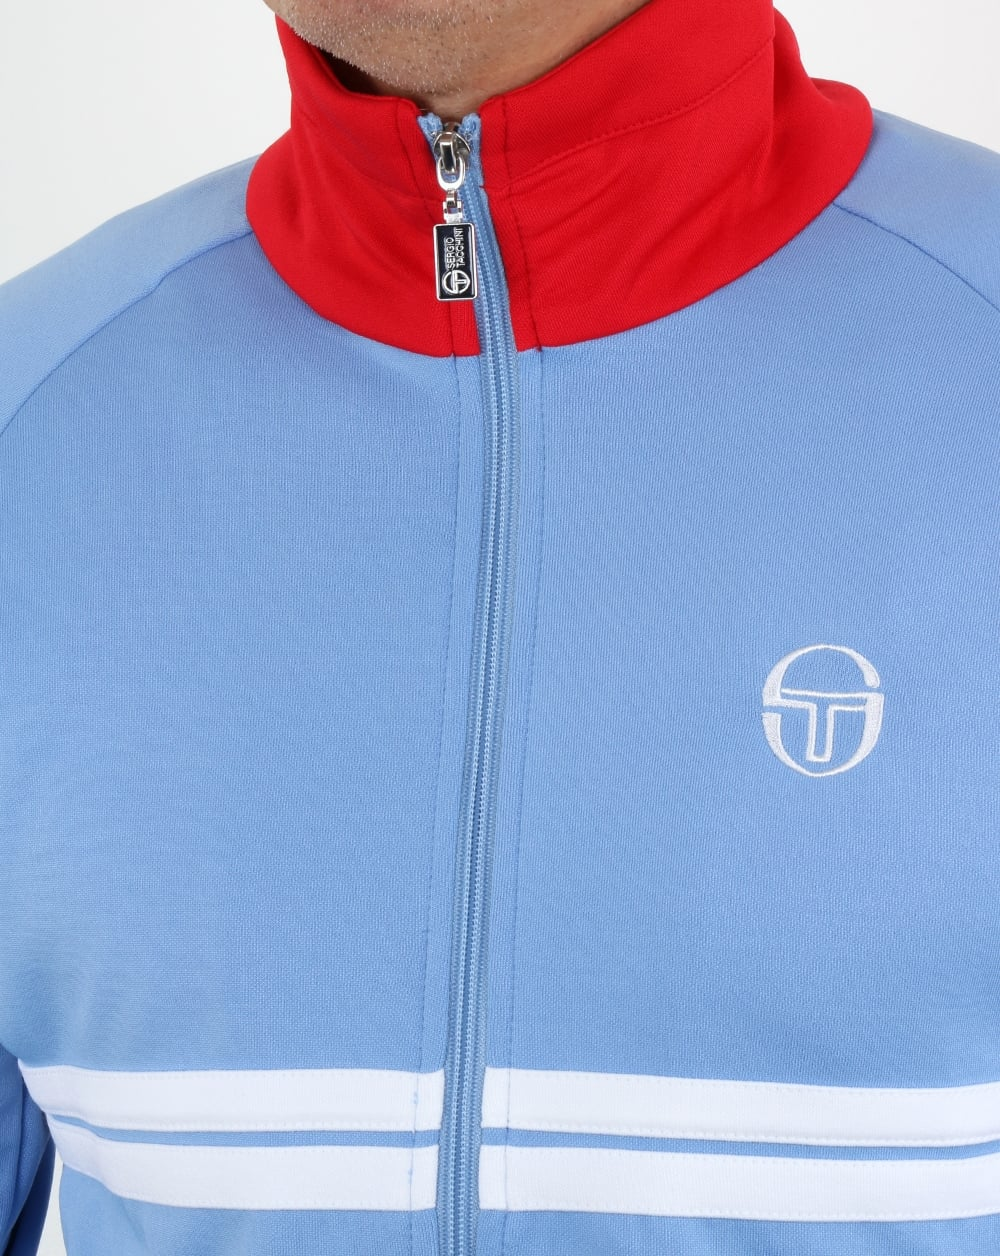 73d71146e7681 Sergio Tacchini Dallas Track Top Sky/Red/White | 80s casual classics